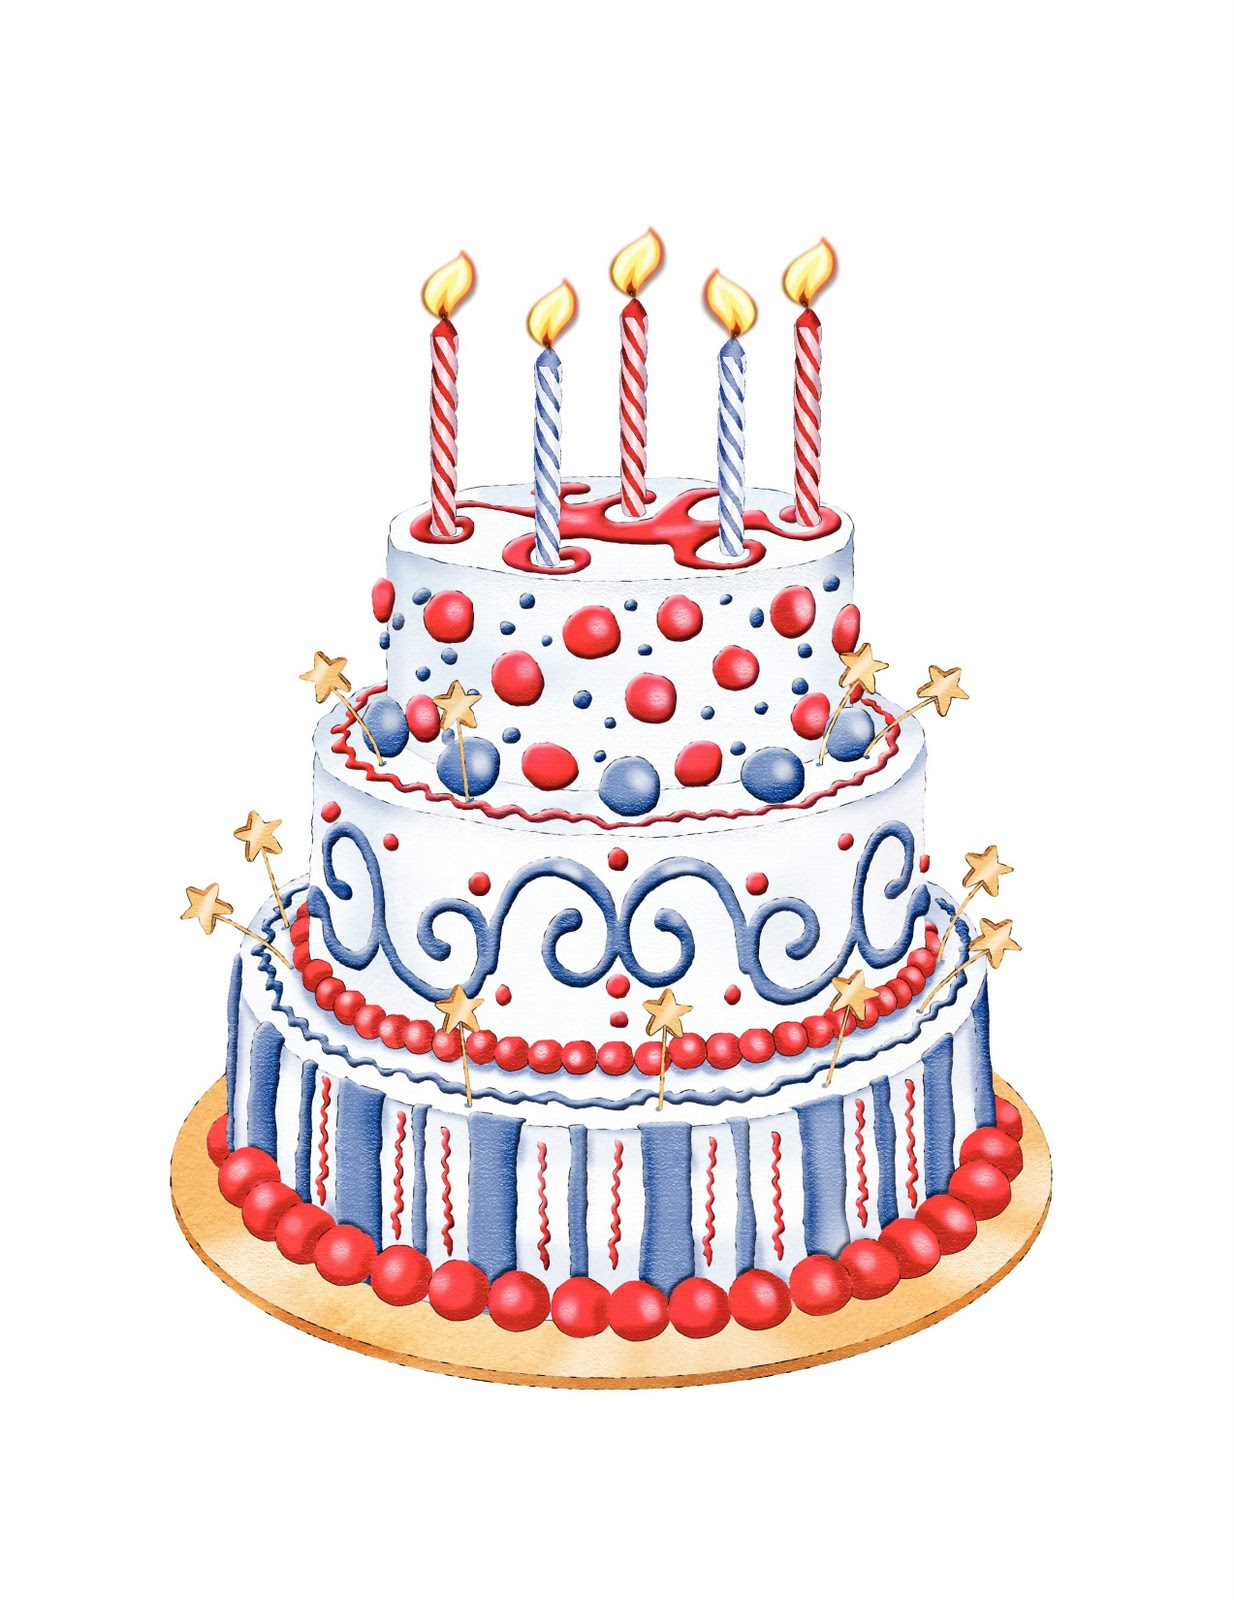 1000 Images About Cake Clipart On Pinterest